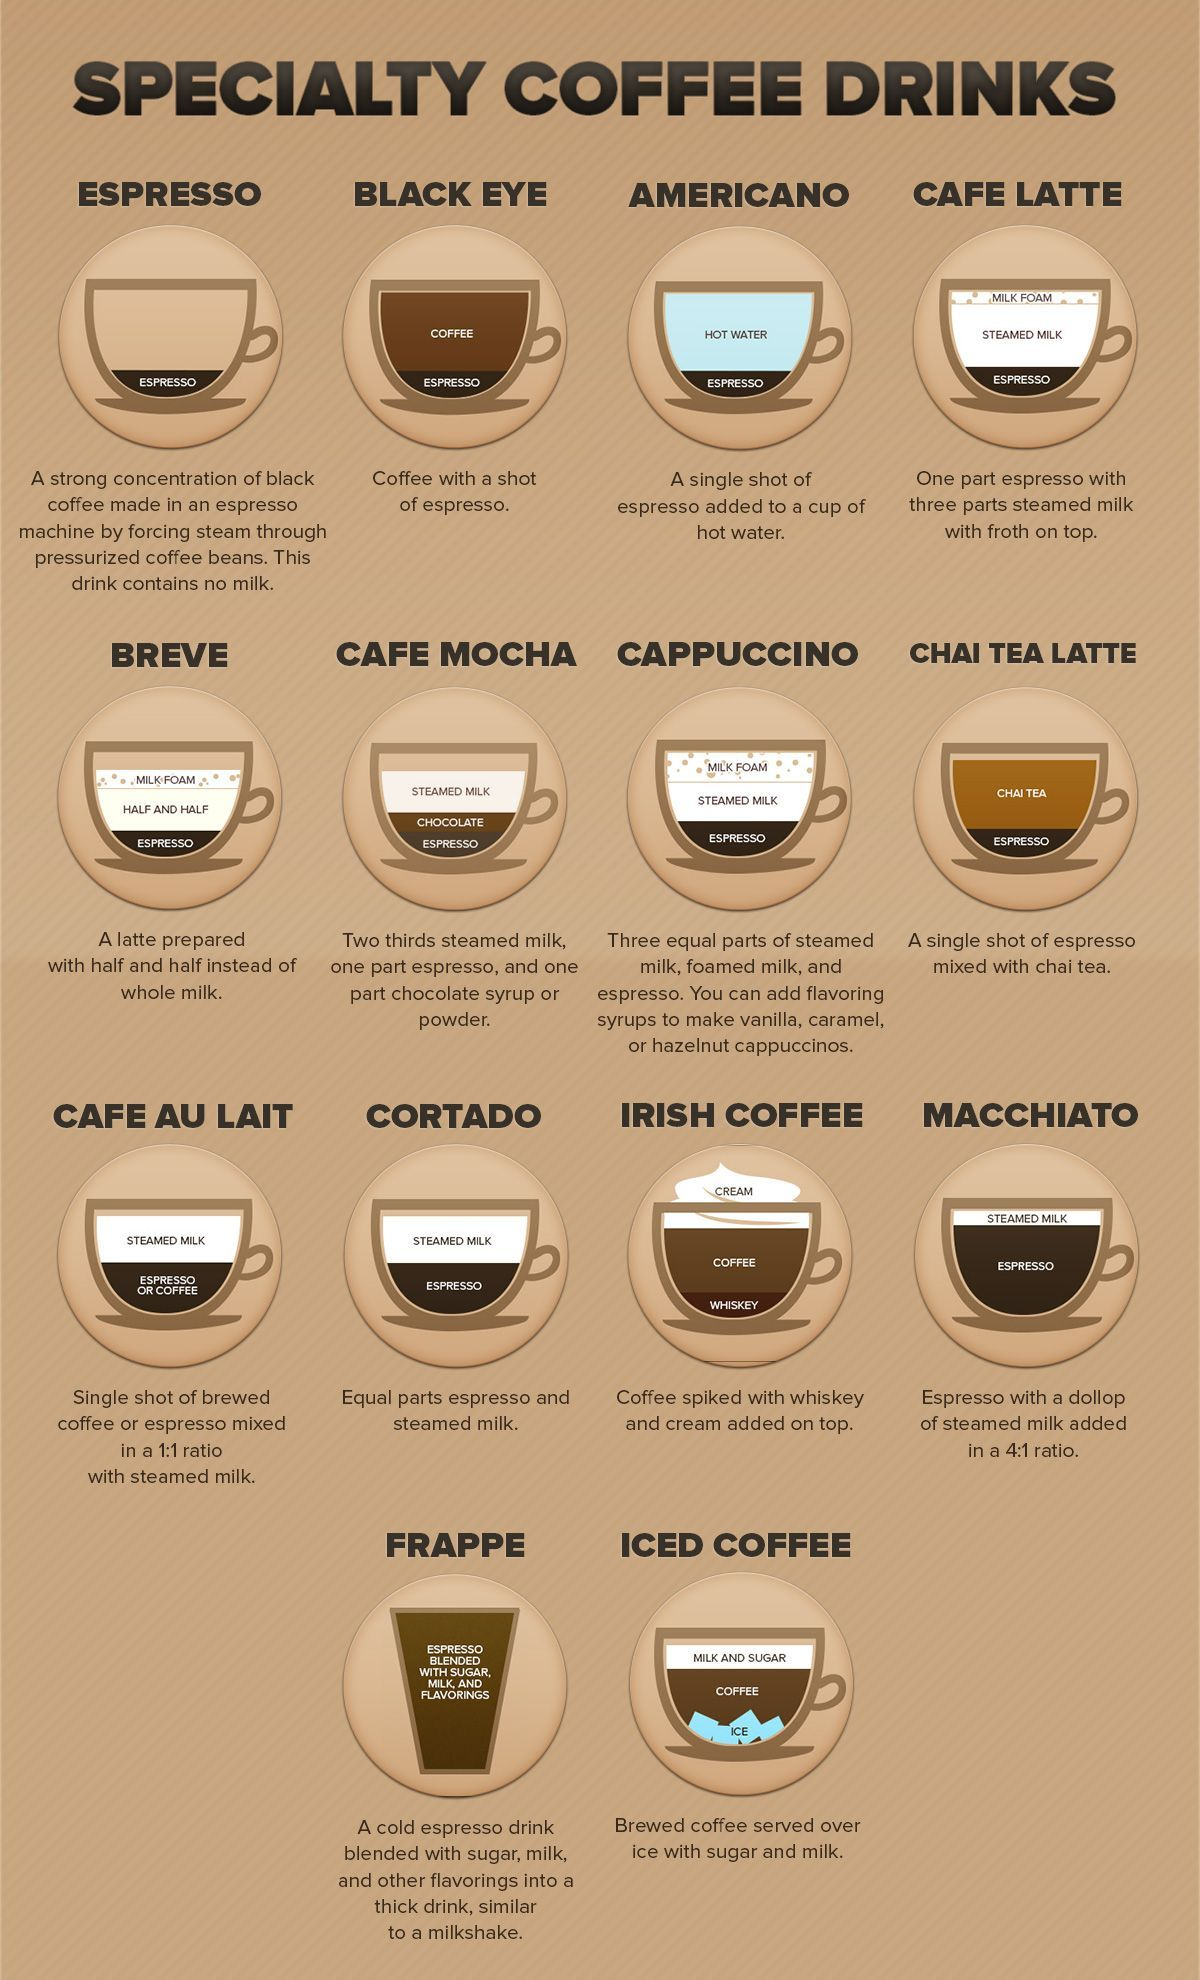 What Are the Best Coffee Brands You Can Buy Specialty